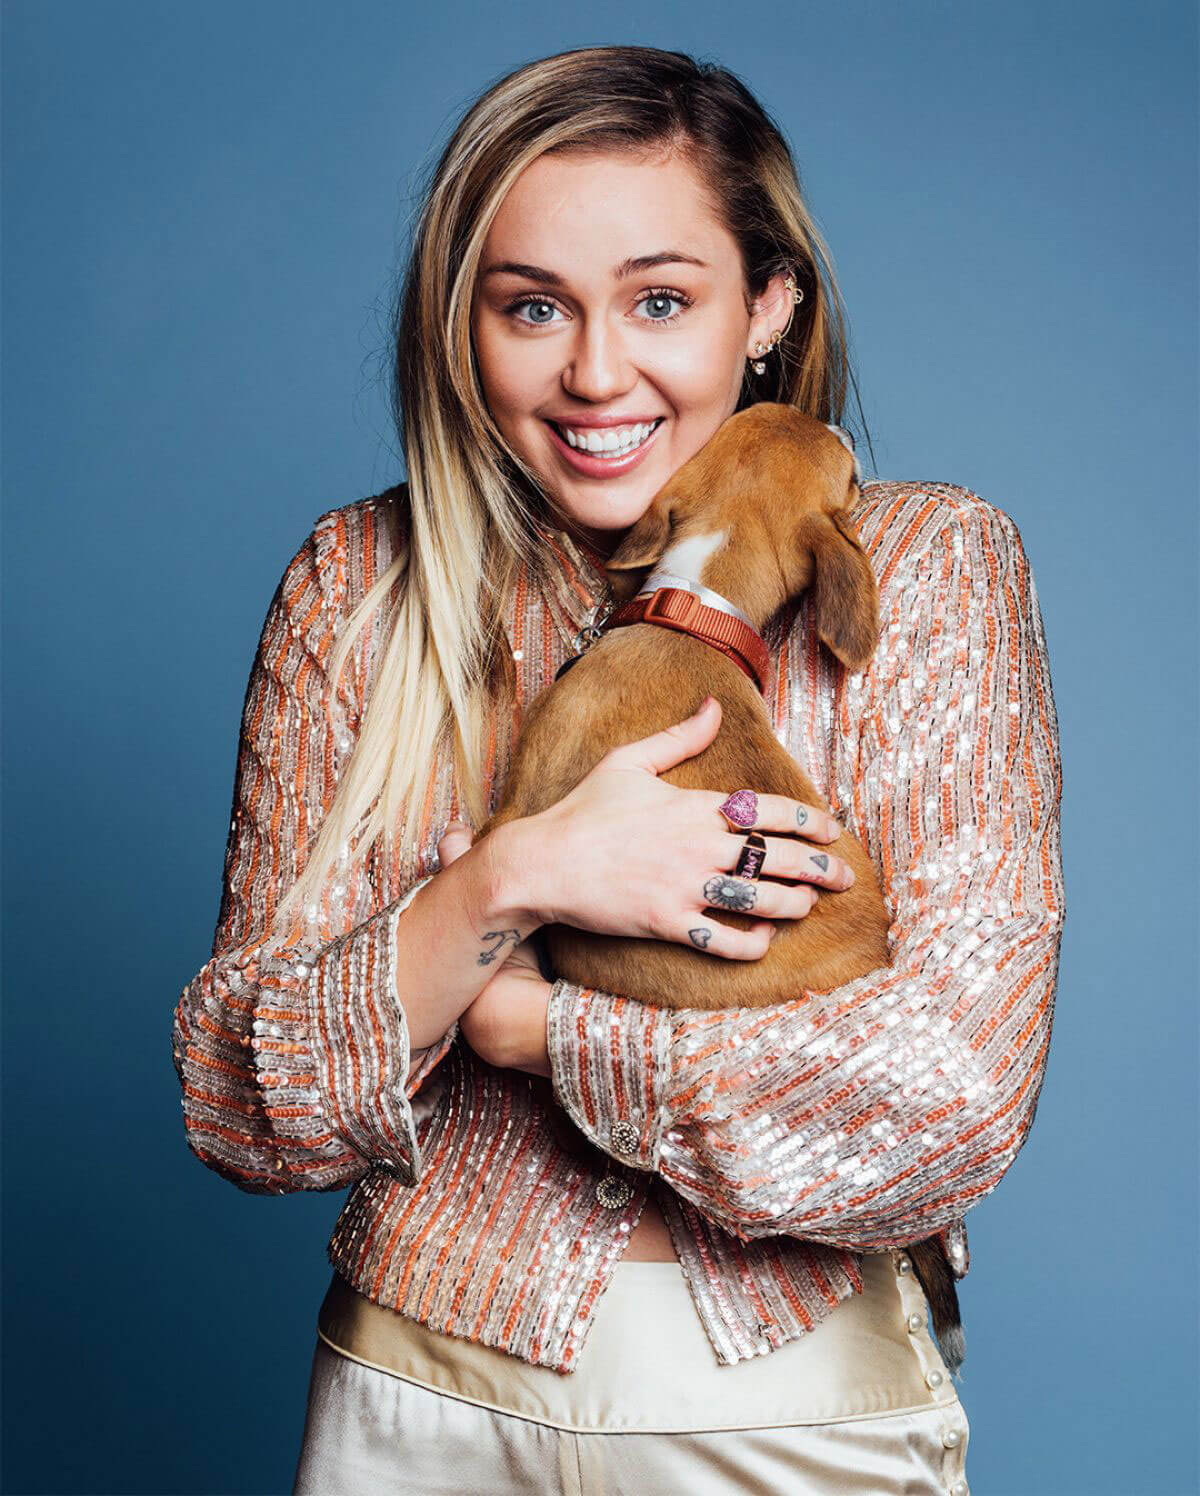 Miley Cyrus Poses for Buzzfeed Magazine, October 2017 ...